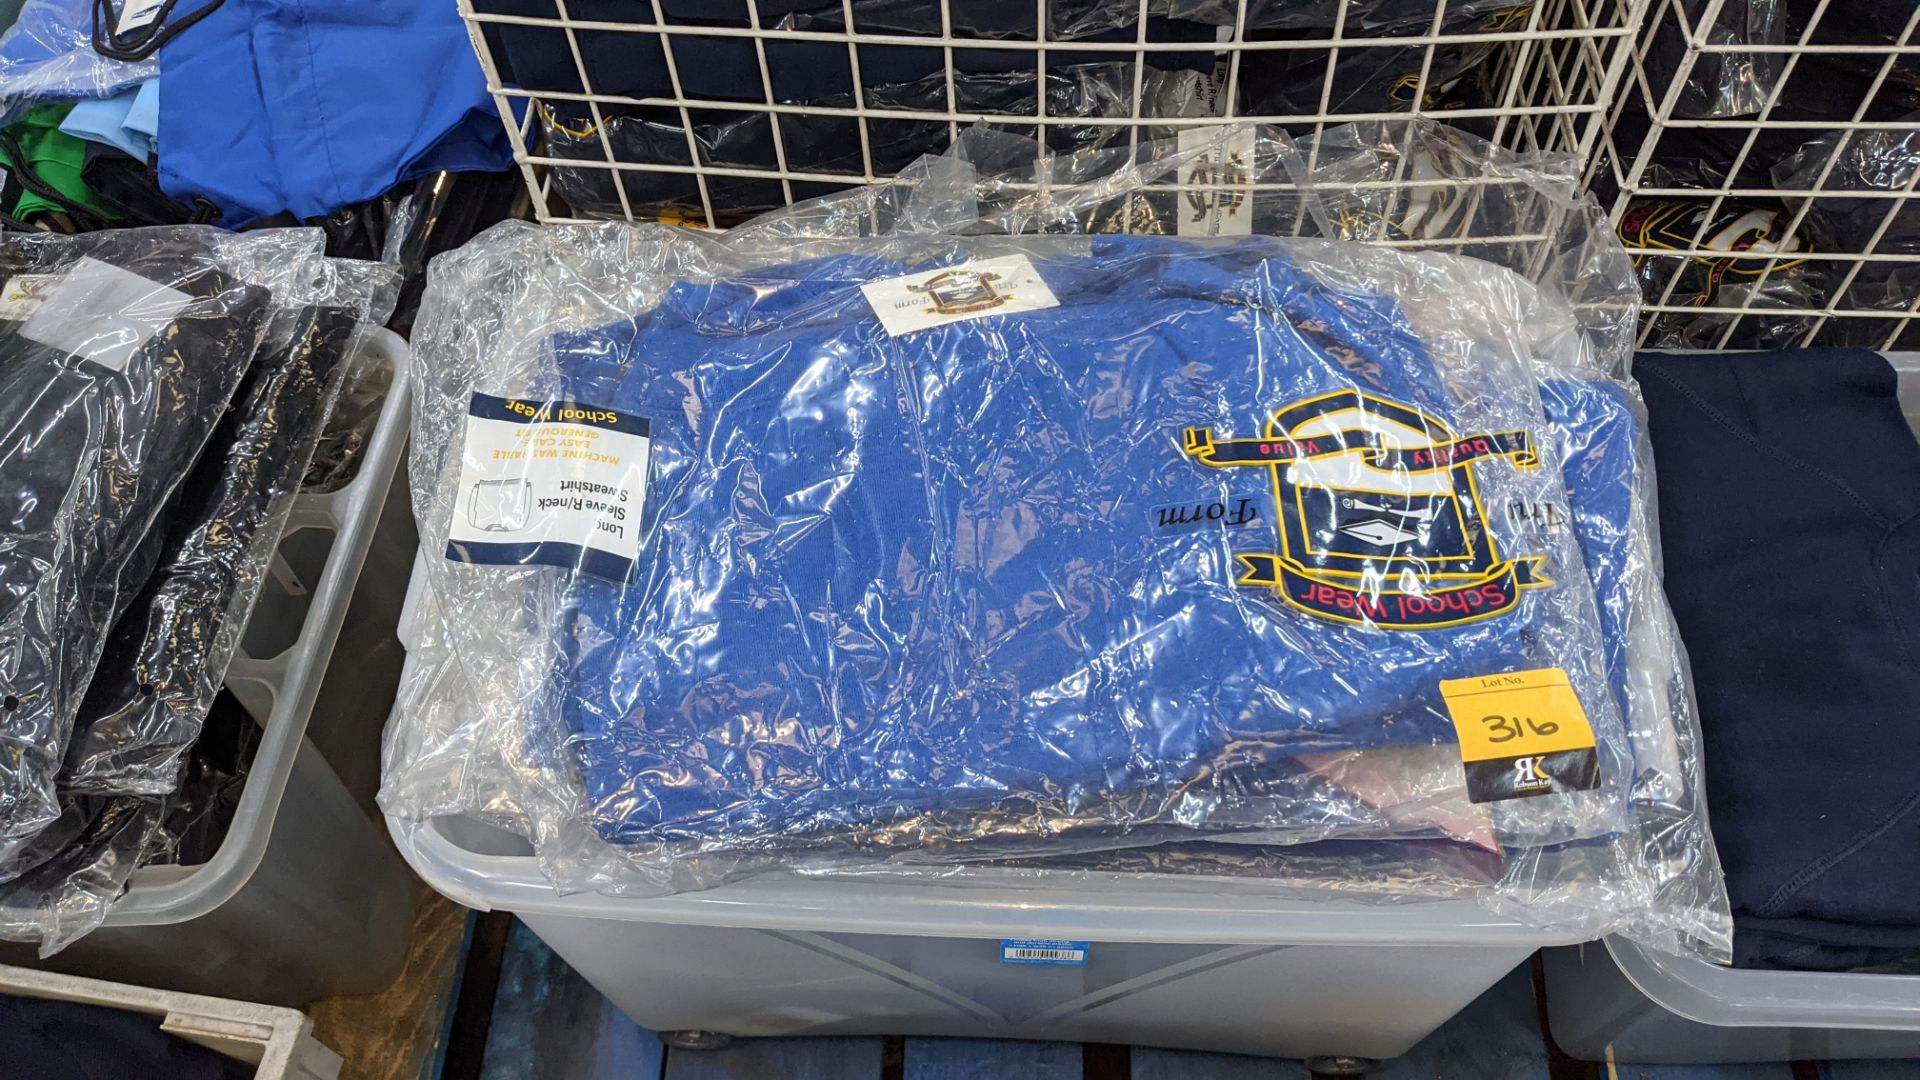 Approx 23 off blue children's sweatshirts & similar - the contents of 1 crate. NB crate excluded - Image 3 of 6